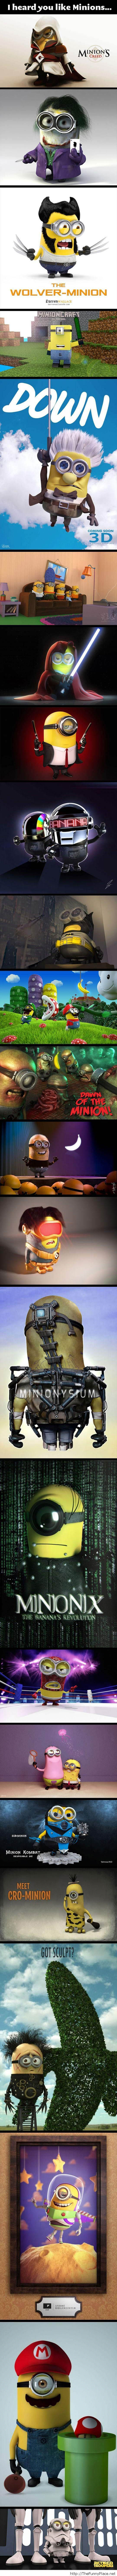 Funny minions pictures best of